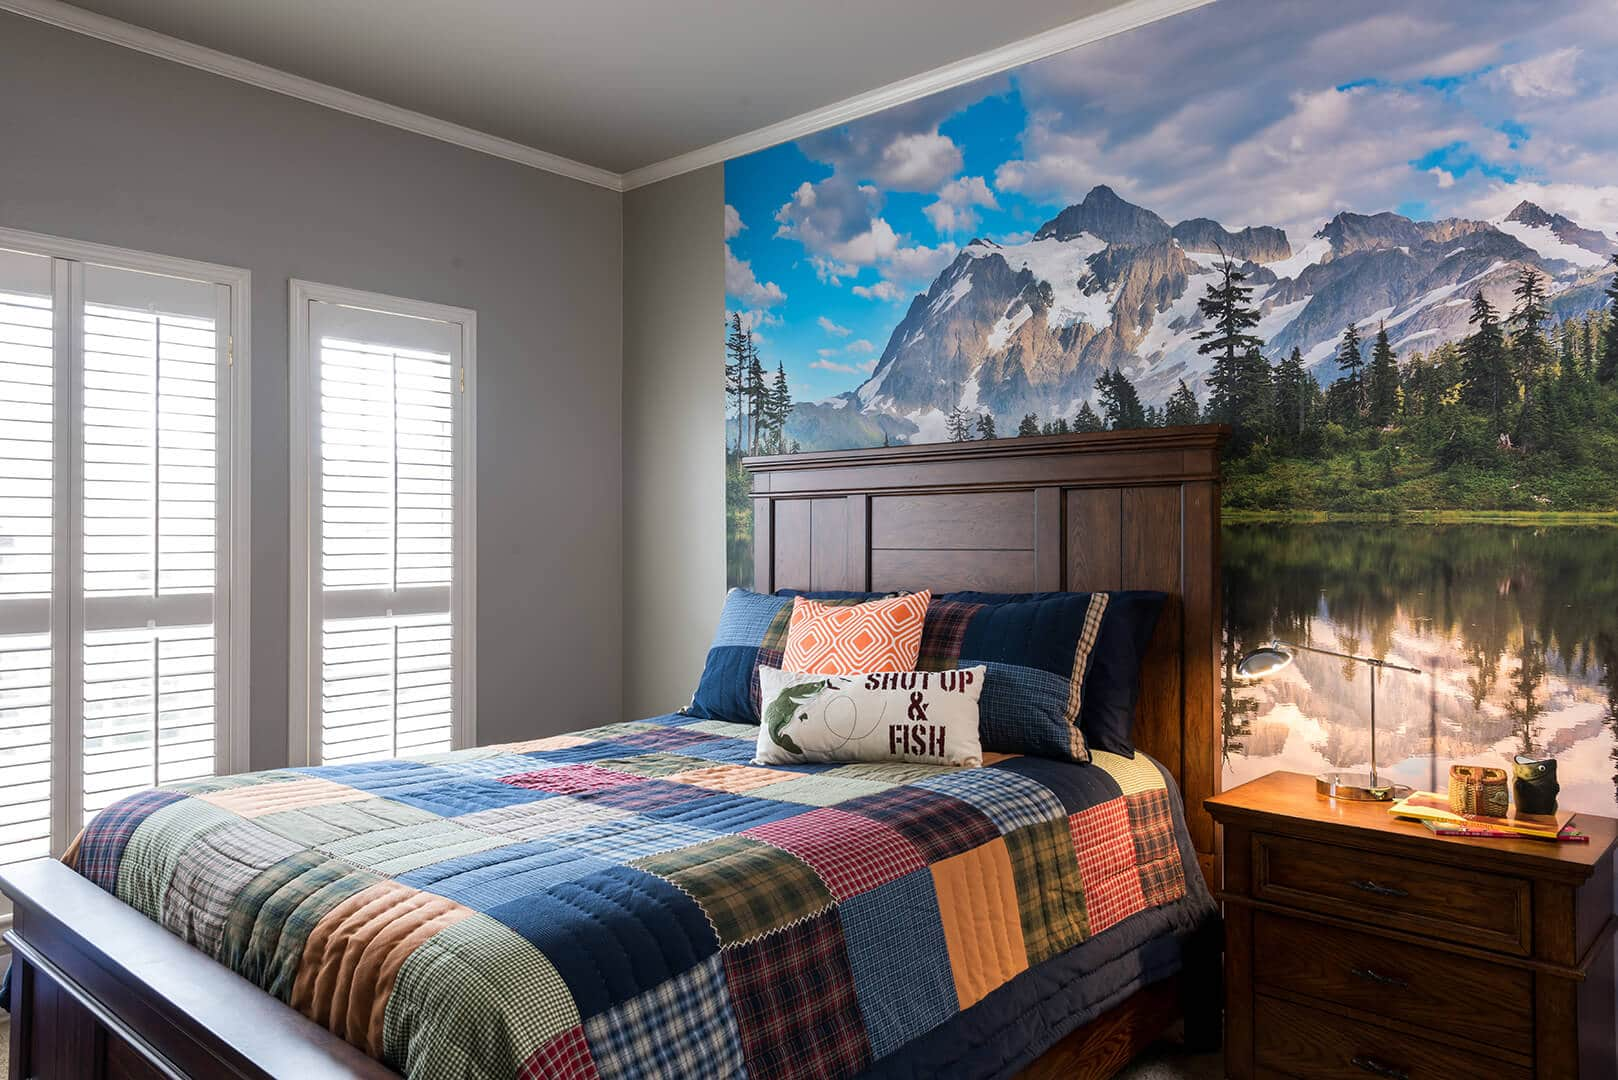 Boys Lake Room Decorating Ideas With Mural by Dee Frazier Interiors Decorating Den Interiors the best Dallas Interior Designer